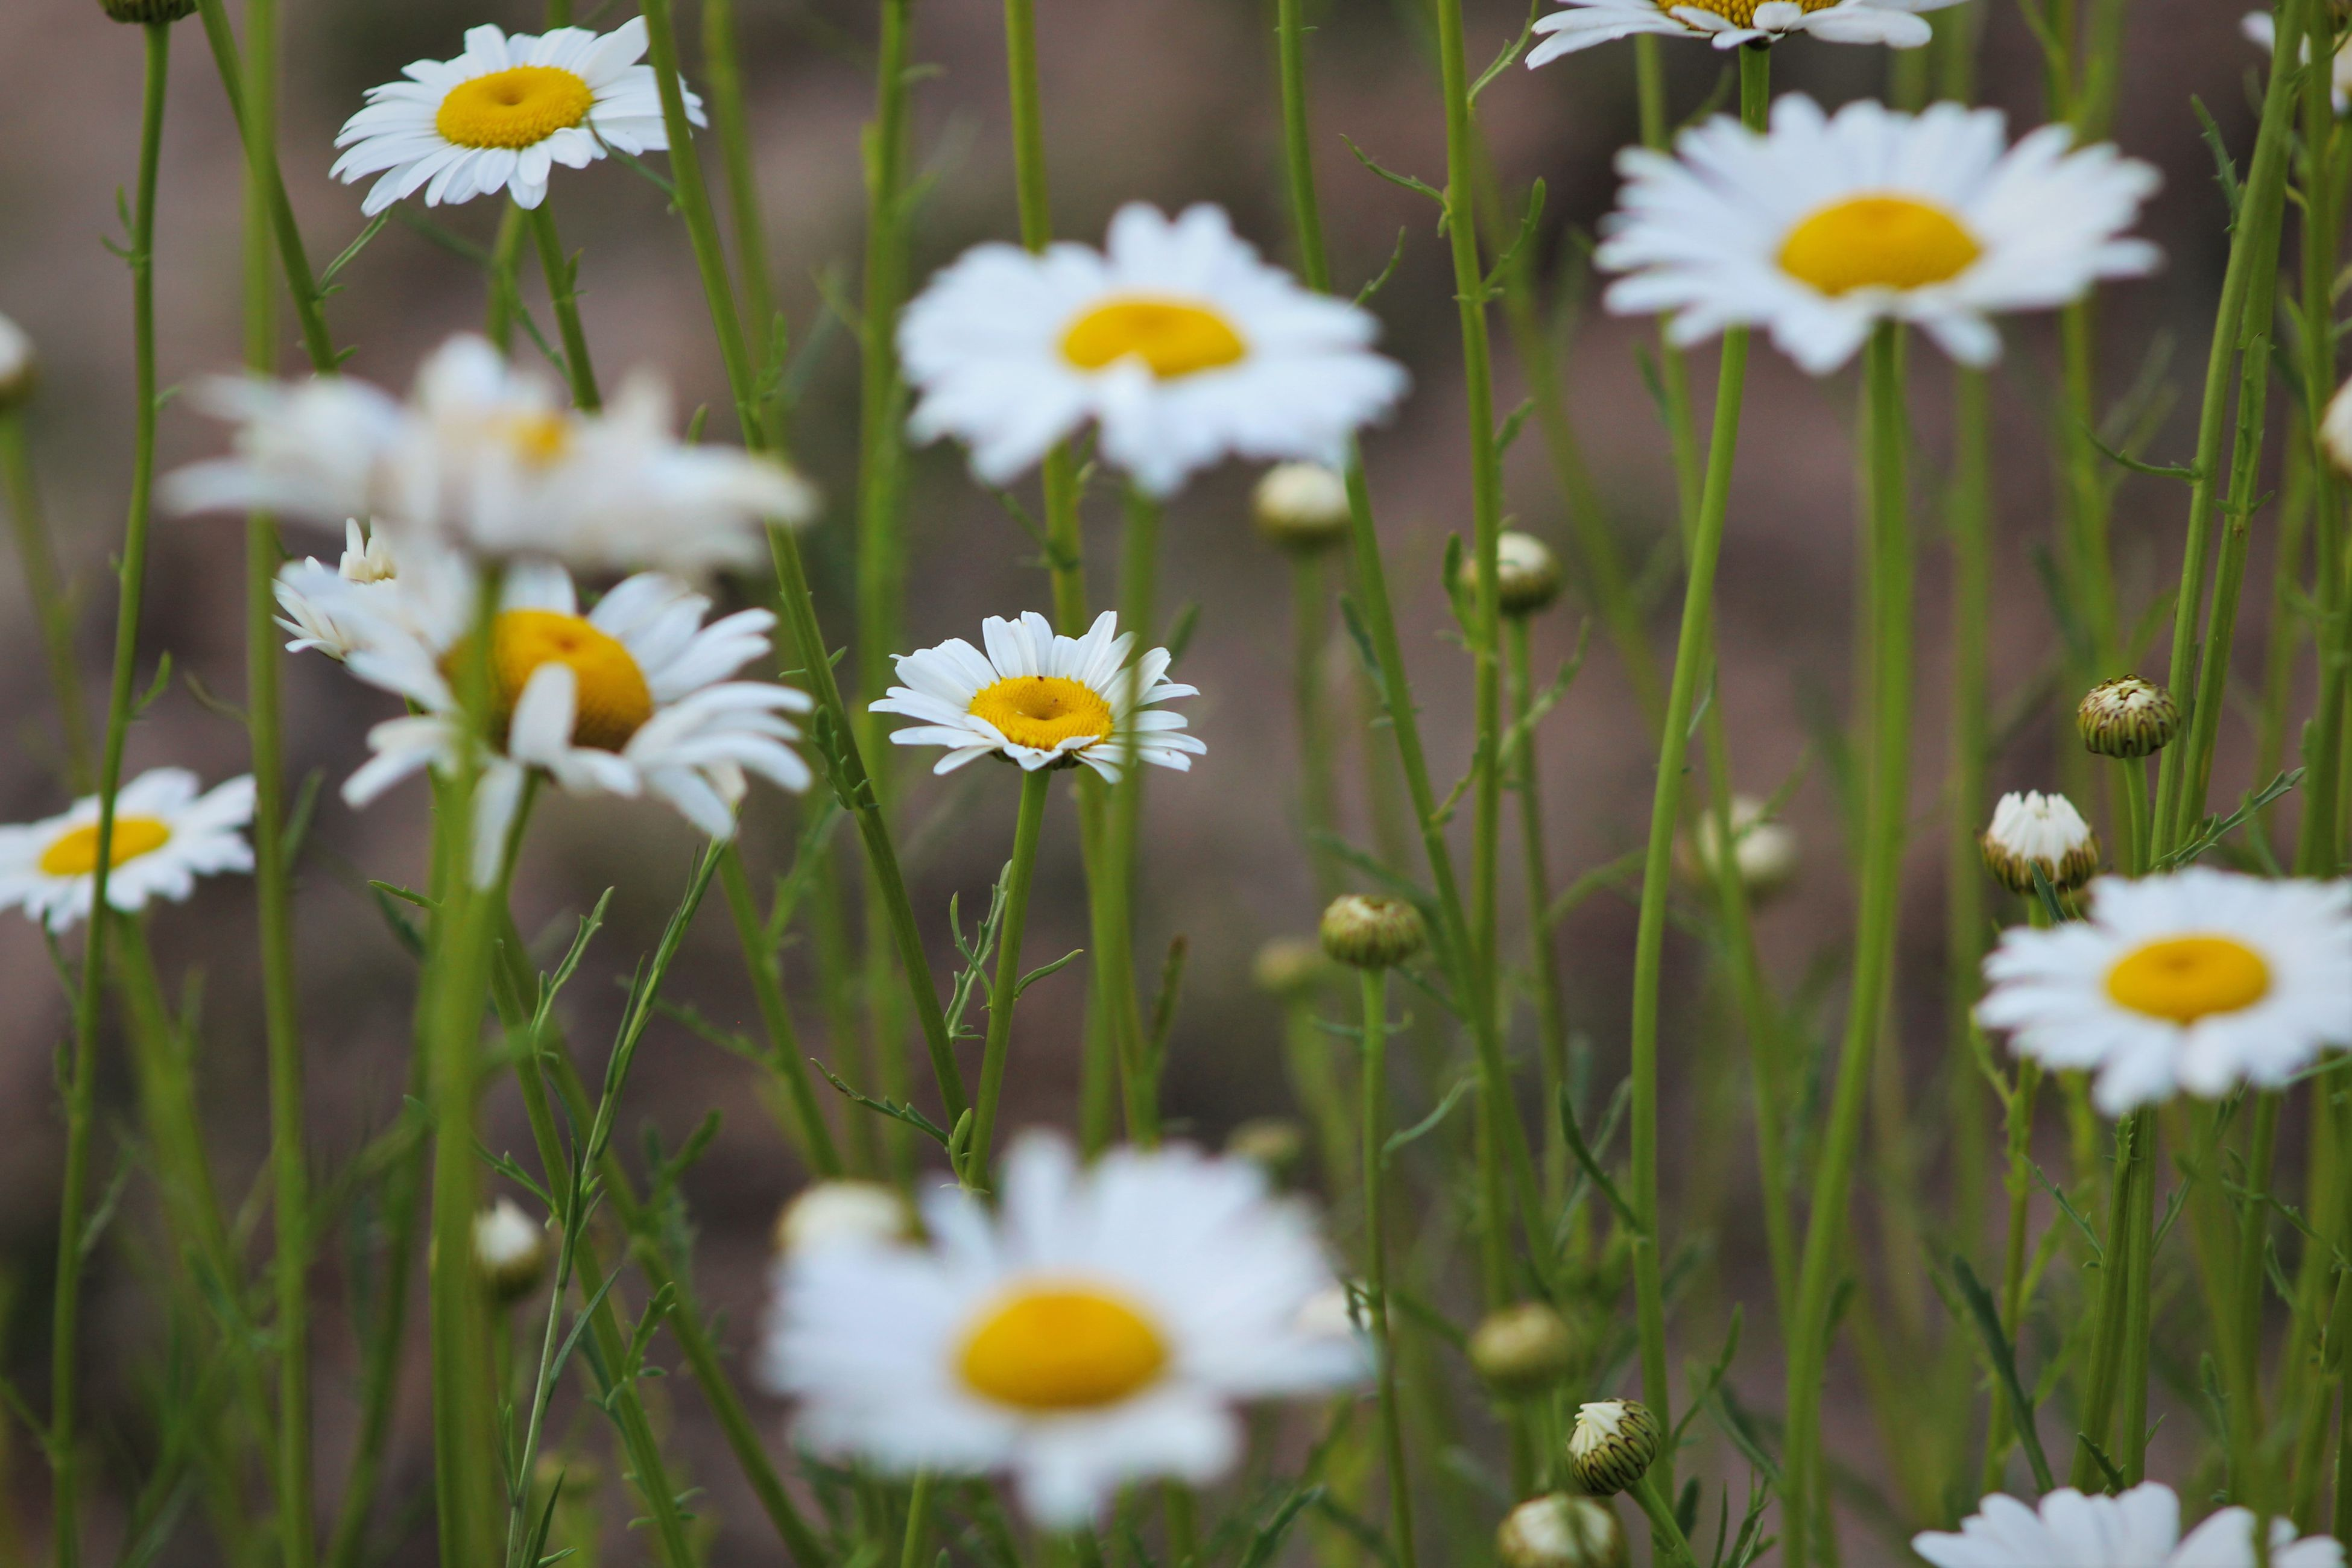 flower, growth, nature, petal, freshness, blooming, beauty in nature, plant, daisy, fragility, yellow, white color, flower head, summer, field, uncultivated, spring, no people, outdoors, grass, day, close-up